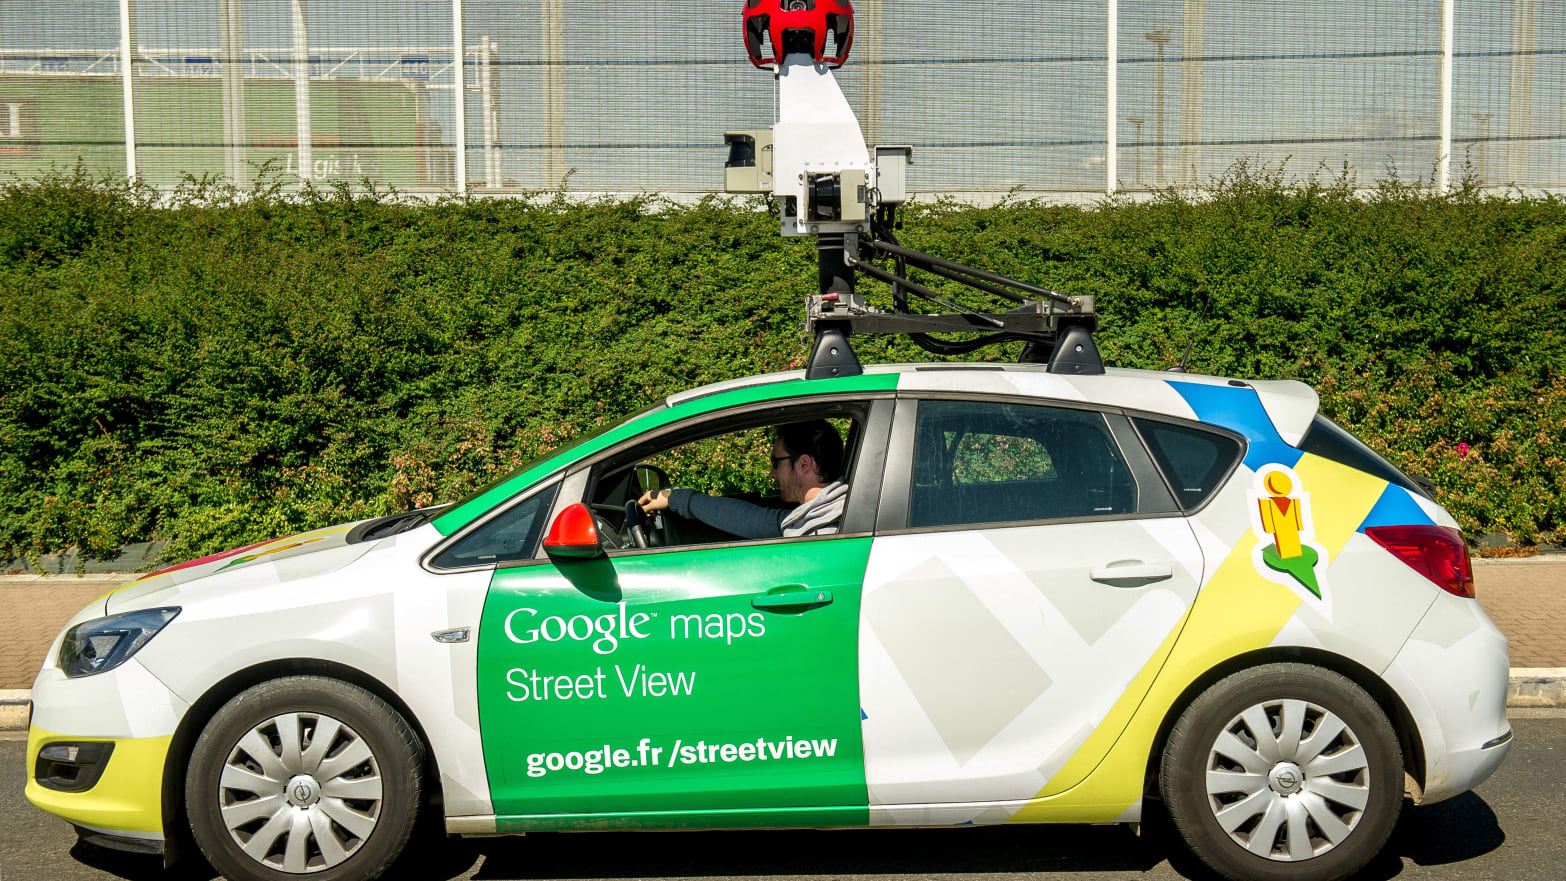 Google Avoids Billions in Fines Over Alleged WiFi Wiretapping on google street view in europe, aspen movie map, street view car, competition of google street view, google mapquest, city view from car, angry birds car, google search, google car that drives itself, microsoft car, camera car, google map us rivers, googlr maps car, google self-driving car, here maps car, google street view privacy concerns, google bruxelles map, google street view in oceania, google street view in latin america, google street view in asia, google earth, google vehicle, mapquest maps car, bing maps car, google street view in africa, google art project, coolest car, web mapping, google map person, google street view, google car crash, google street view in the united states,